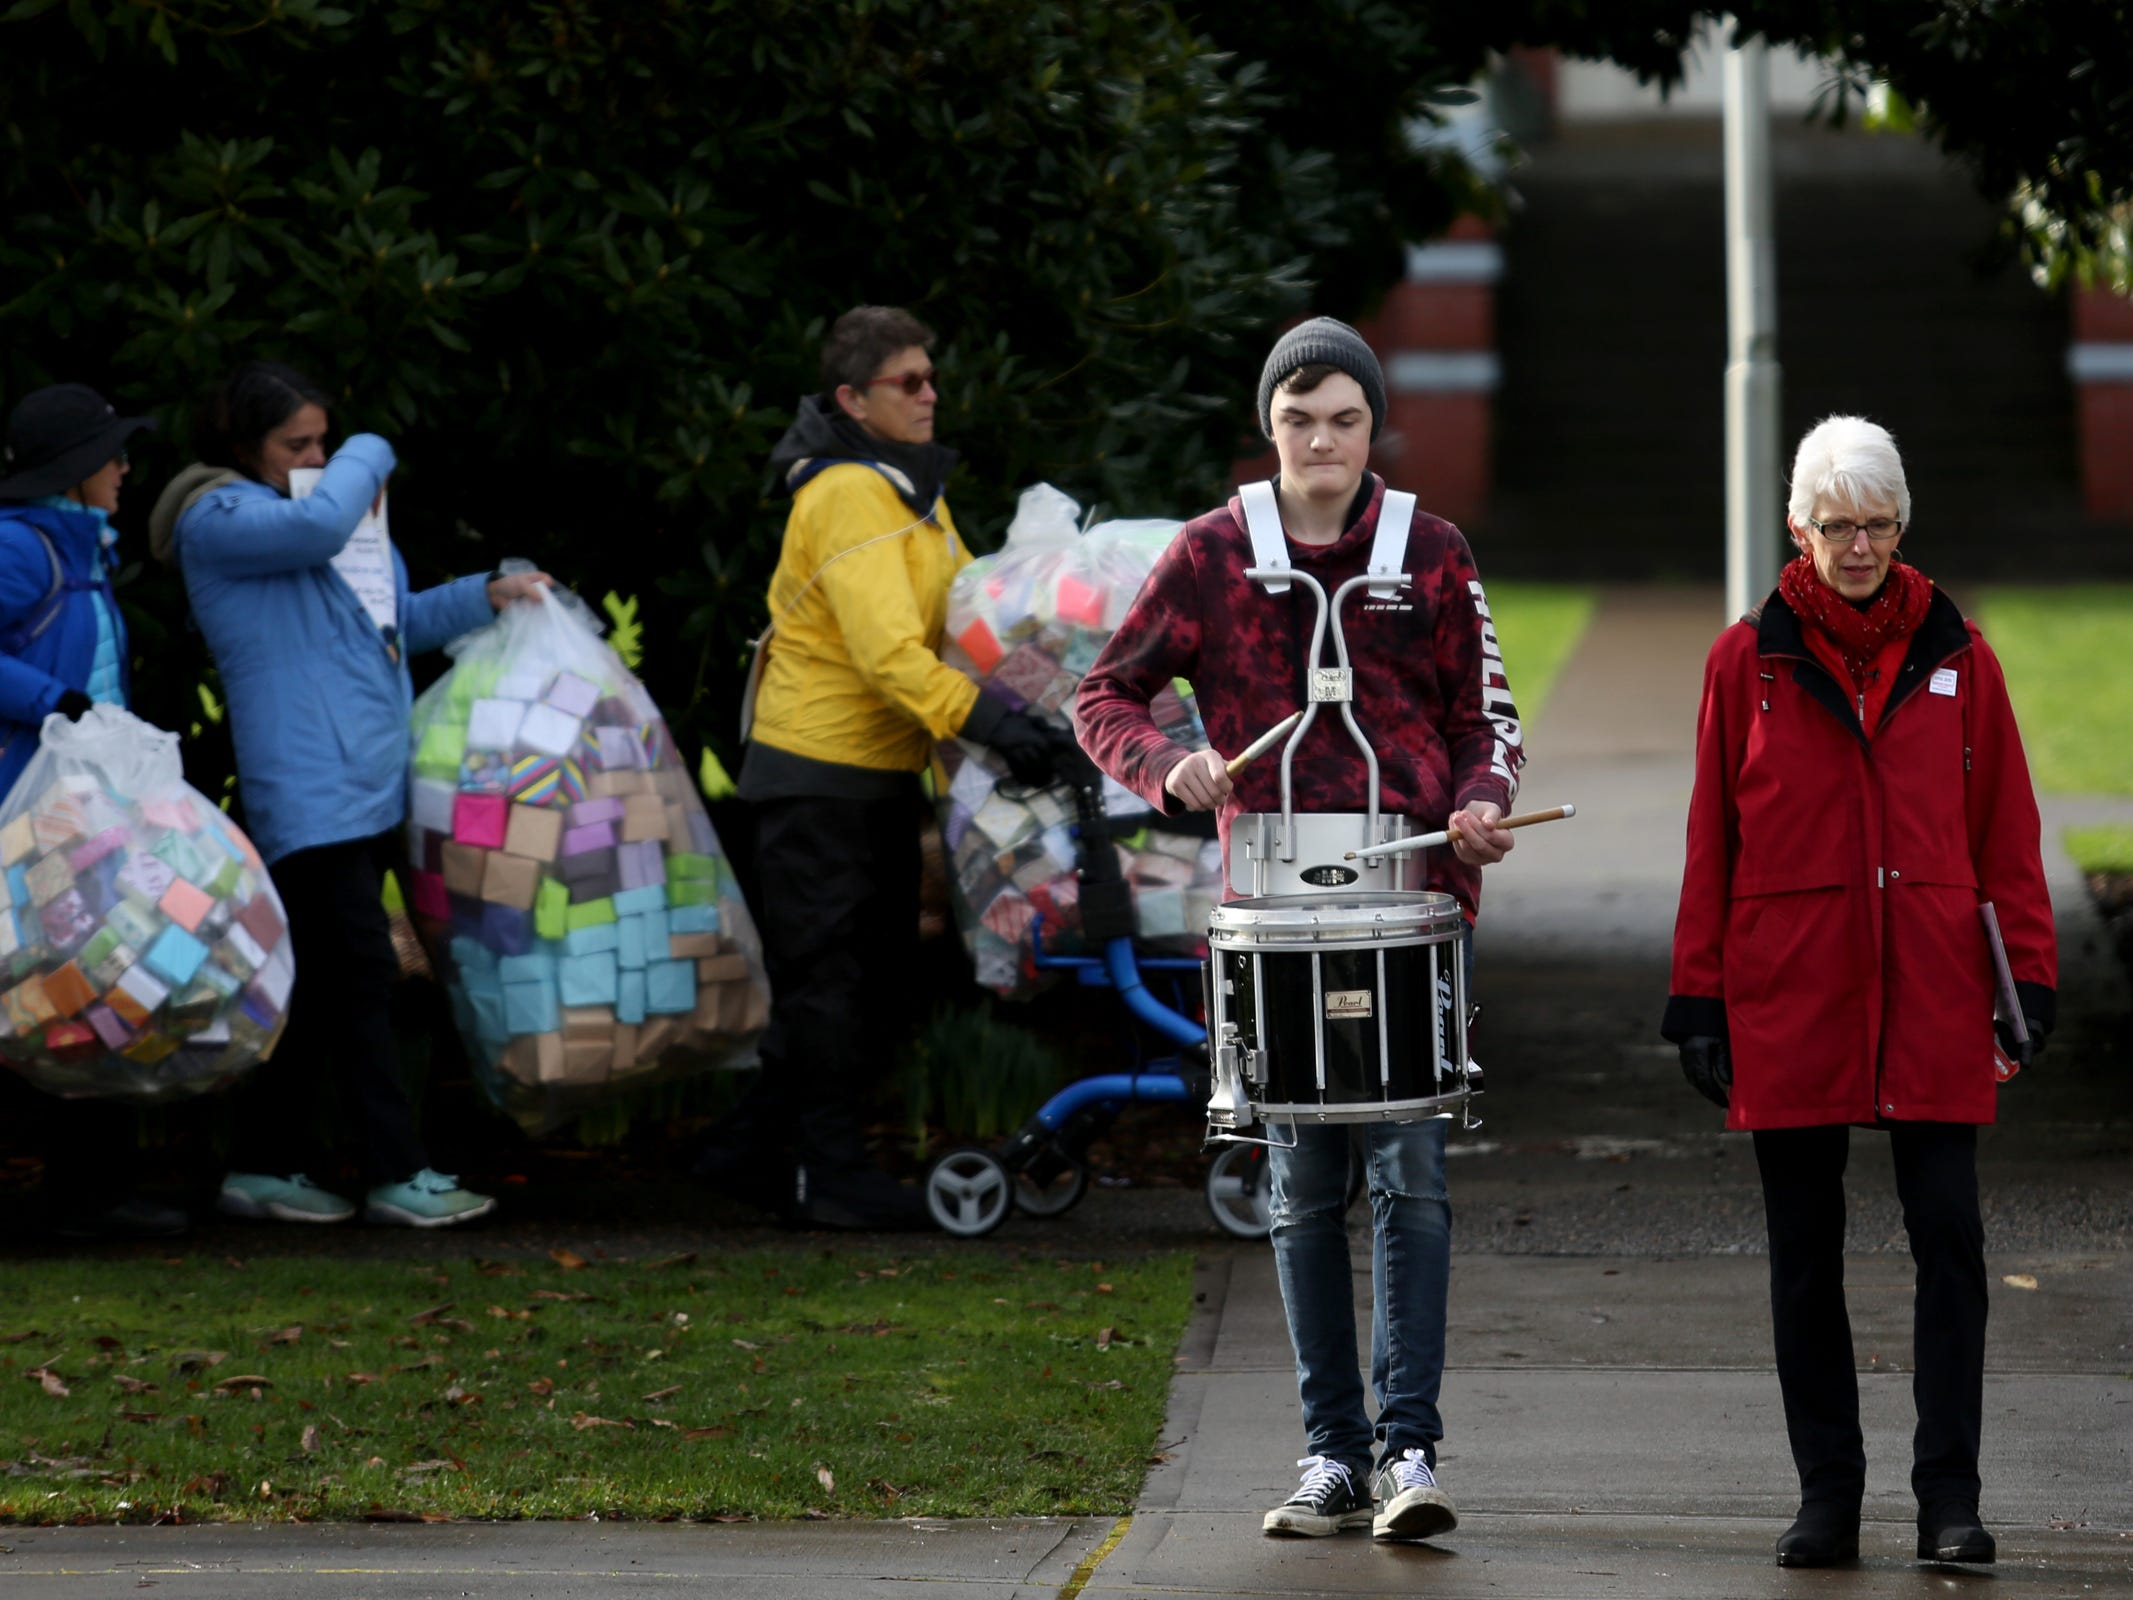 More than 100 people, led by drummer Tristan Kruger and artist Leslie Lee, deliver and display more than 37,000 handmade origami boxes, representing victims of gun violence, at the Oregon State Capitol in Salem on Friday, Feb. 15, 2019. The Soul Box Project, started by Portland artist Leslie Lee, aims to reveal the enormity of the gun fire epidemic.